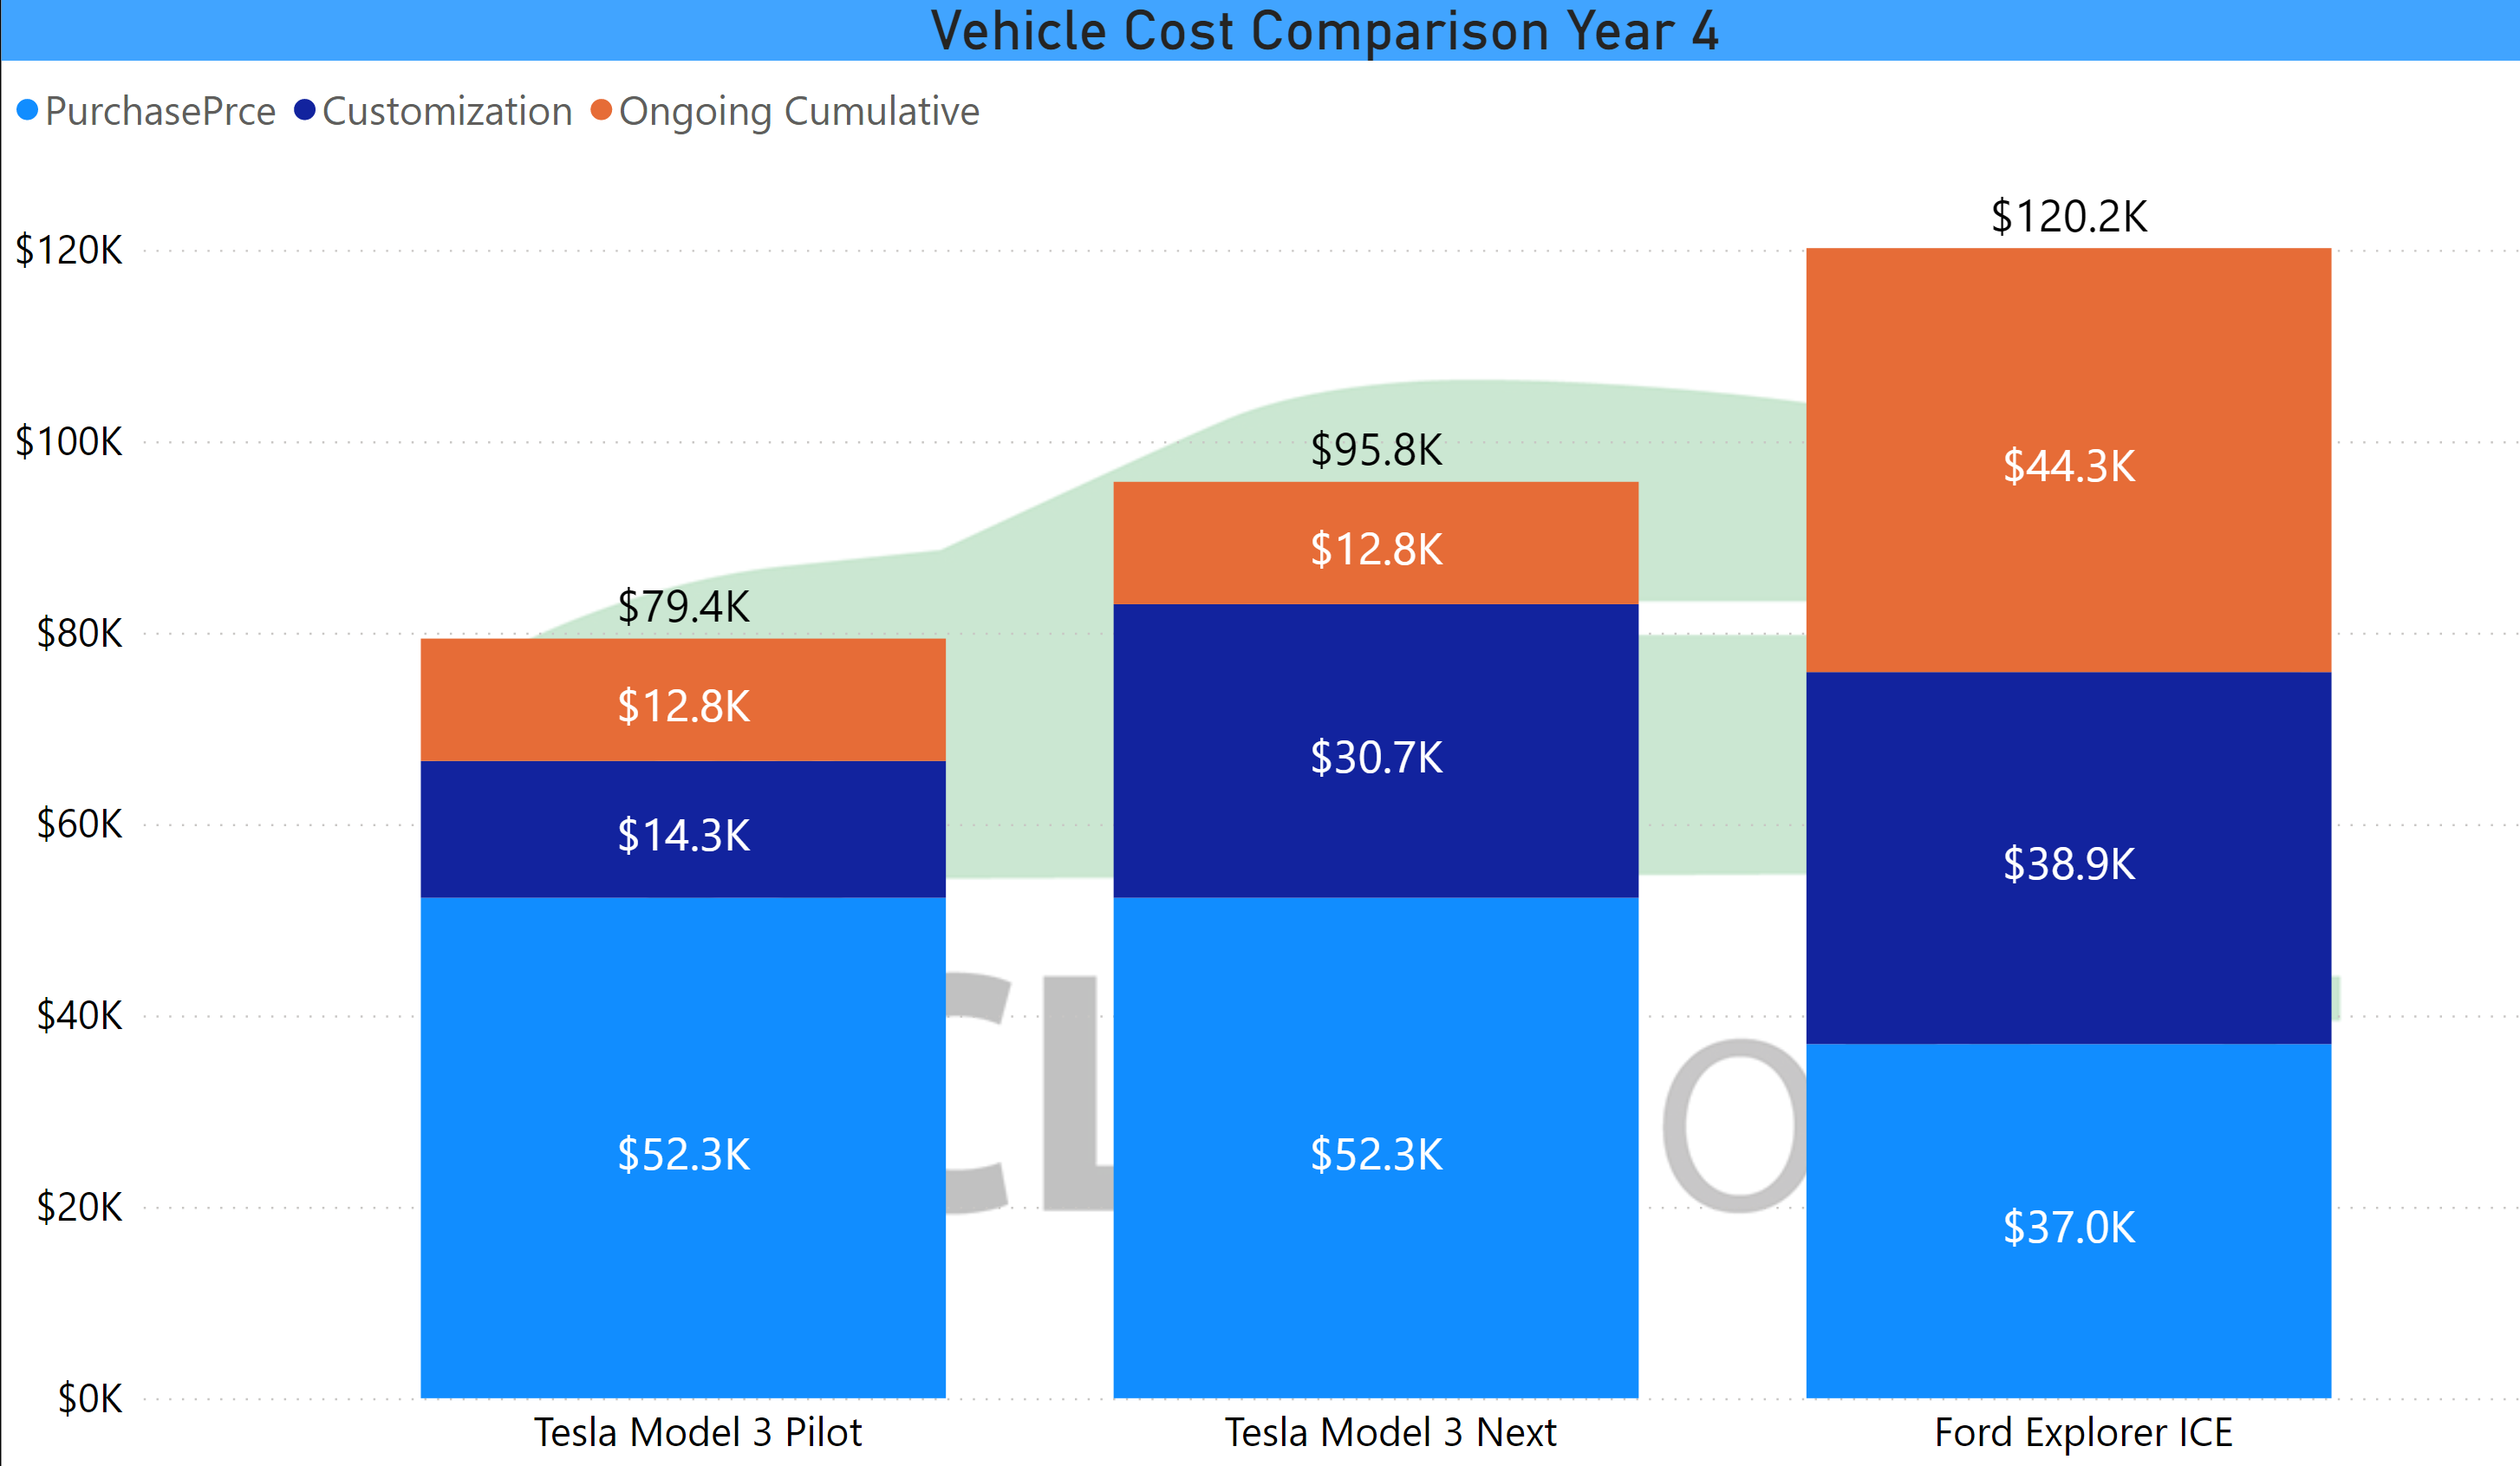 Vehicle Cost Comparison Year 4 Cash Basis